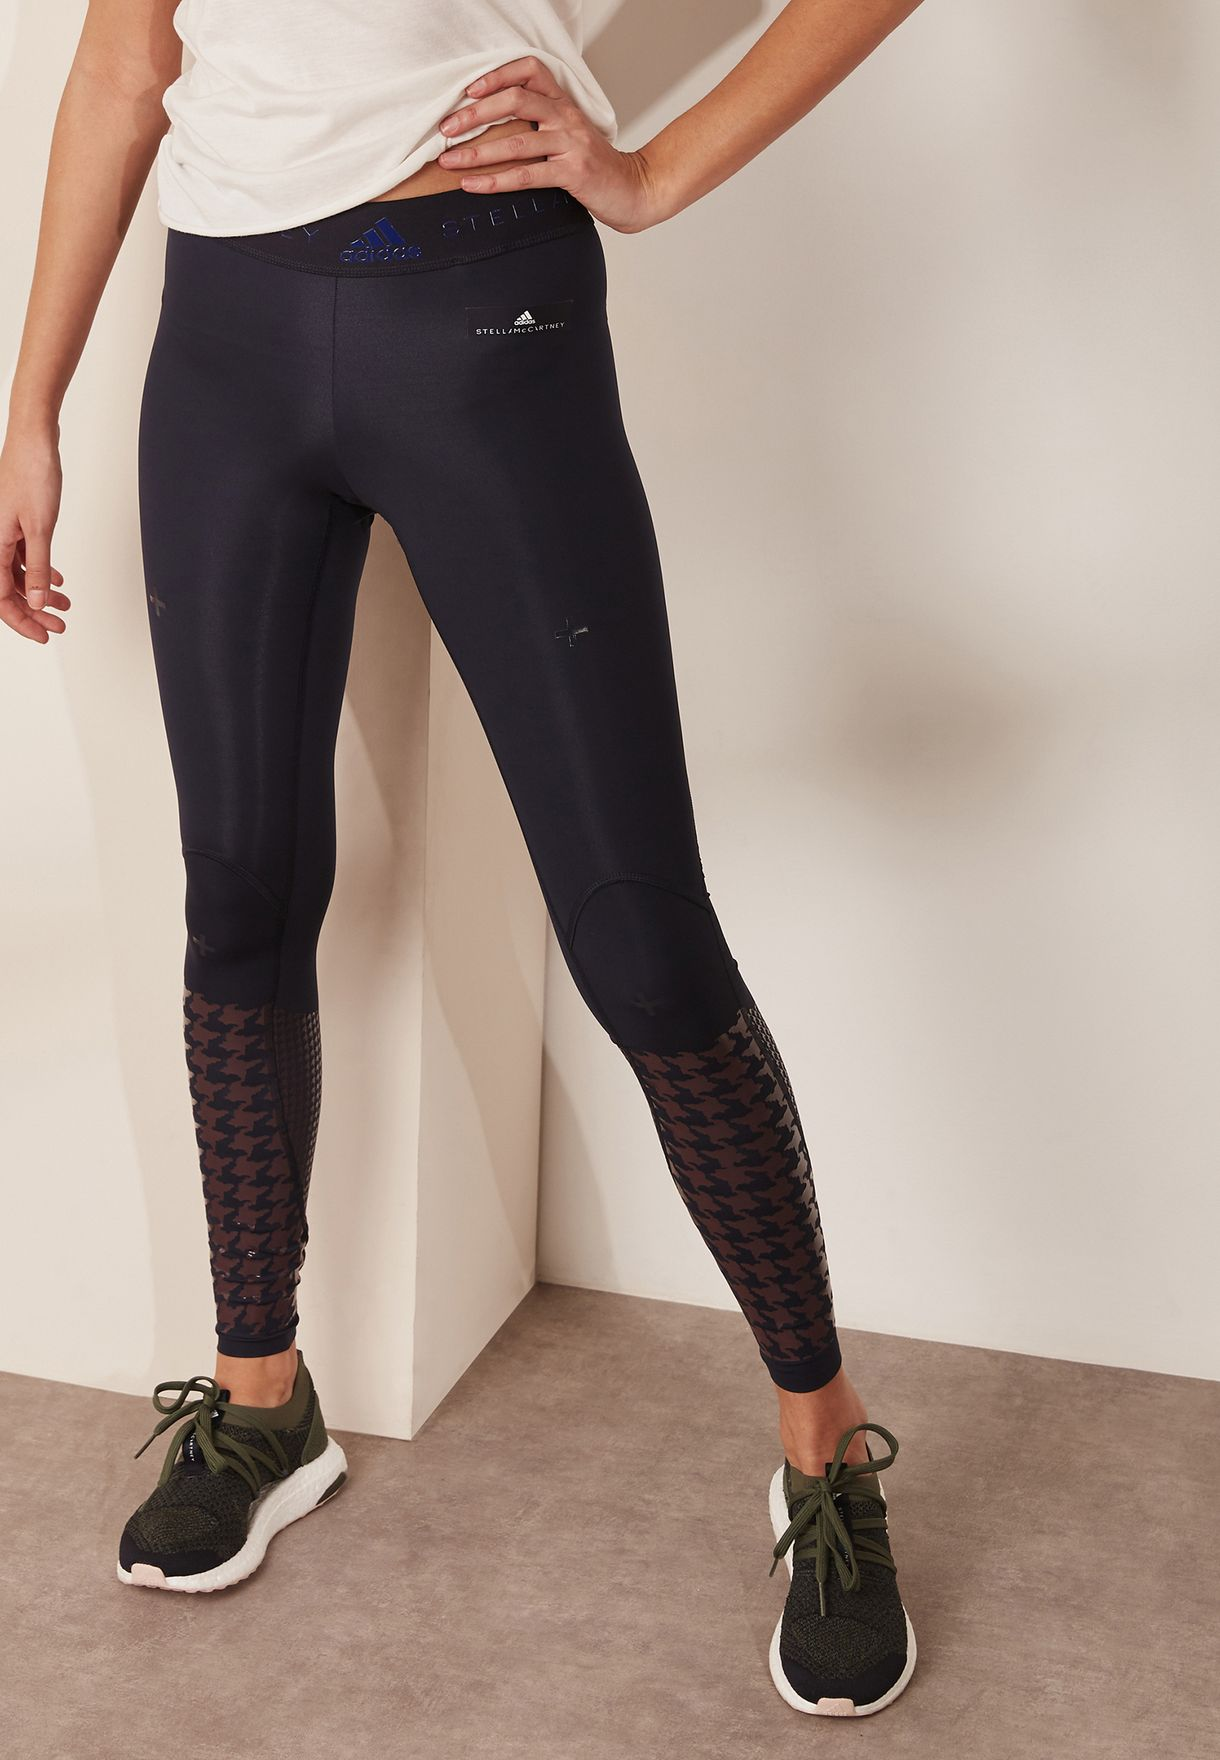 88a77320e7e072 Shop adidas by Stella McCartney navy TechFit Recovery Tights BQ5134 for  Women in UAE - AD399AT18YVT